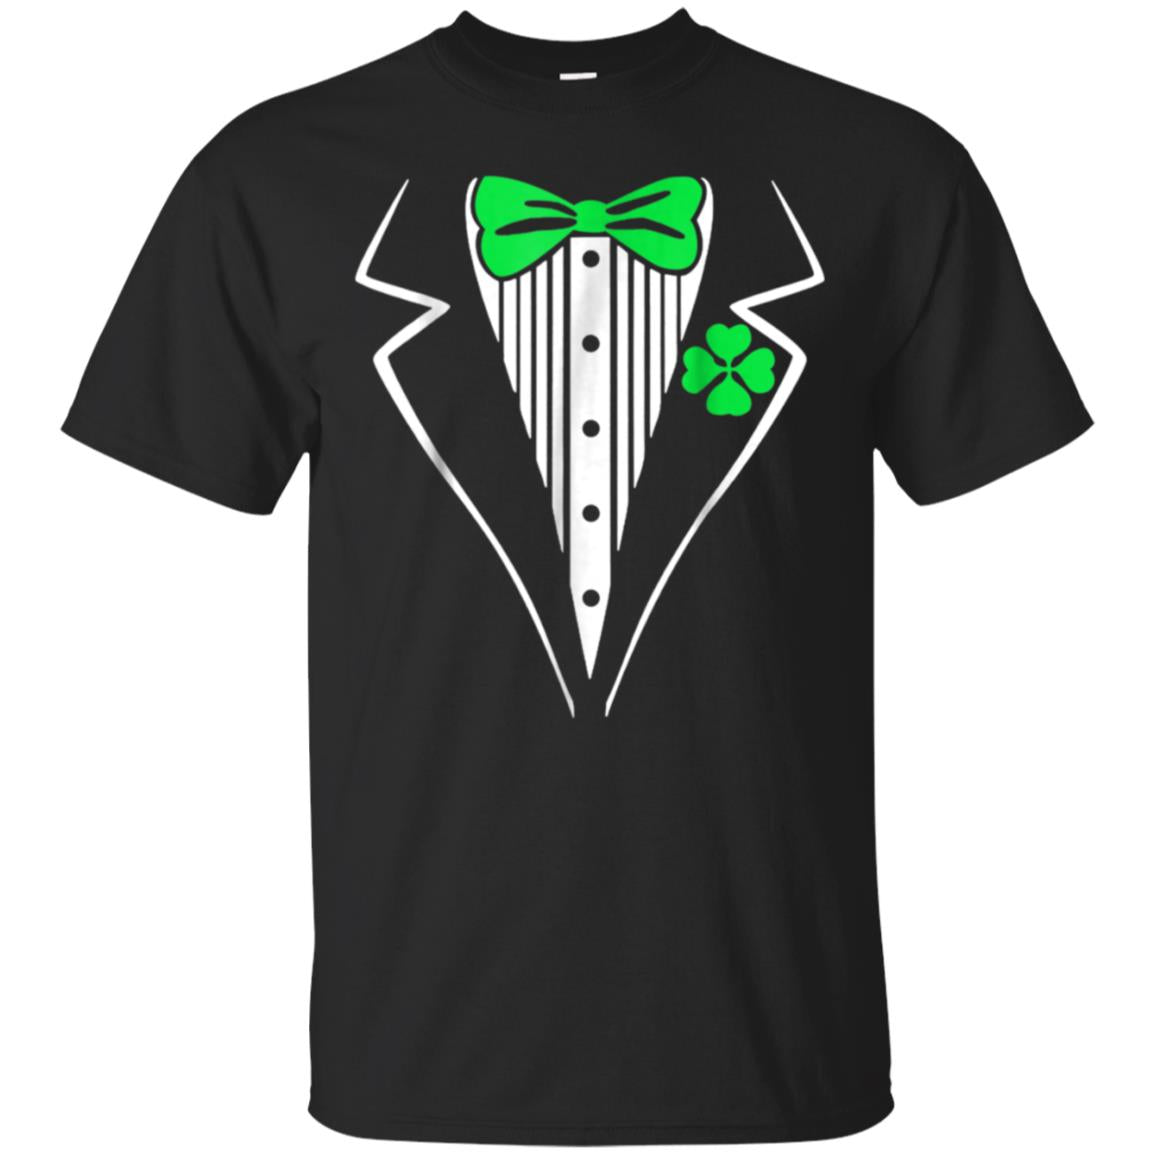 St. Patrick's Day Tshirt Tuxedo Lucky Irish Men Women Kids 99promocode